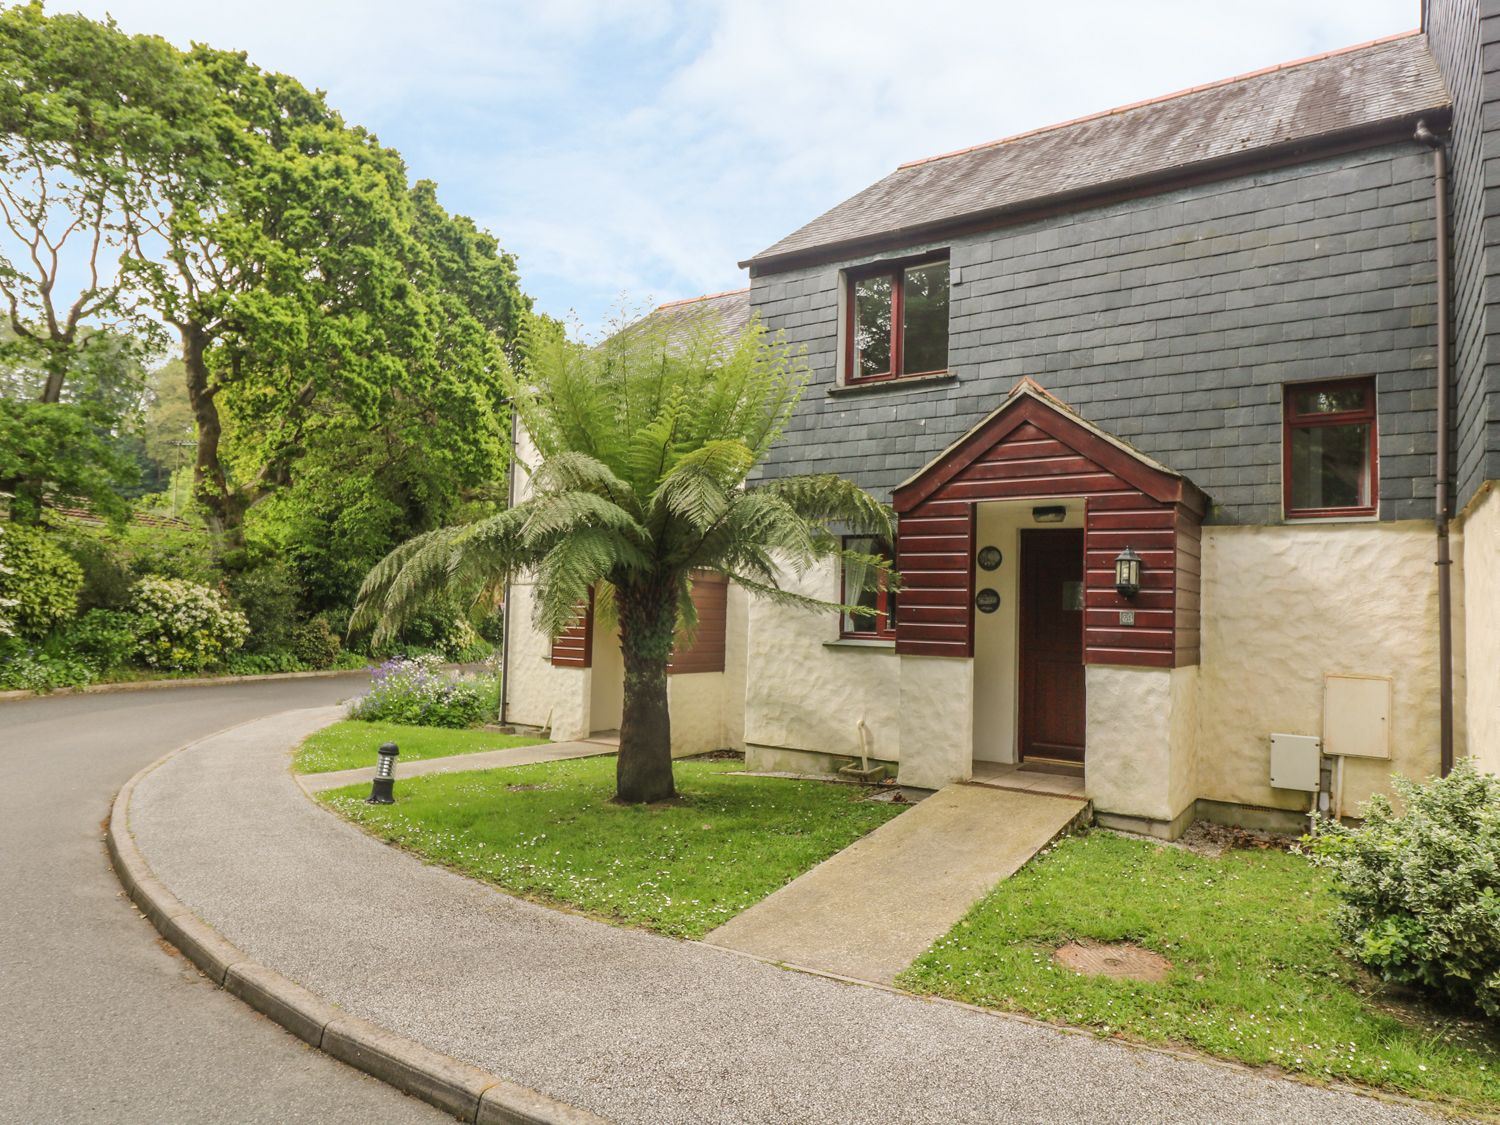 Cuckoo's Cottage - Cornwall - 959493 - photo 1